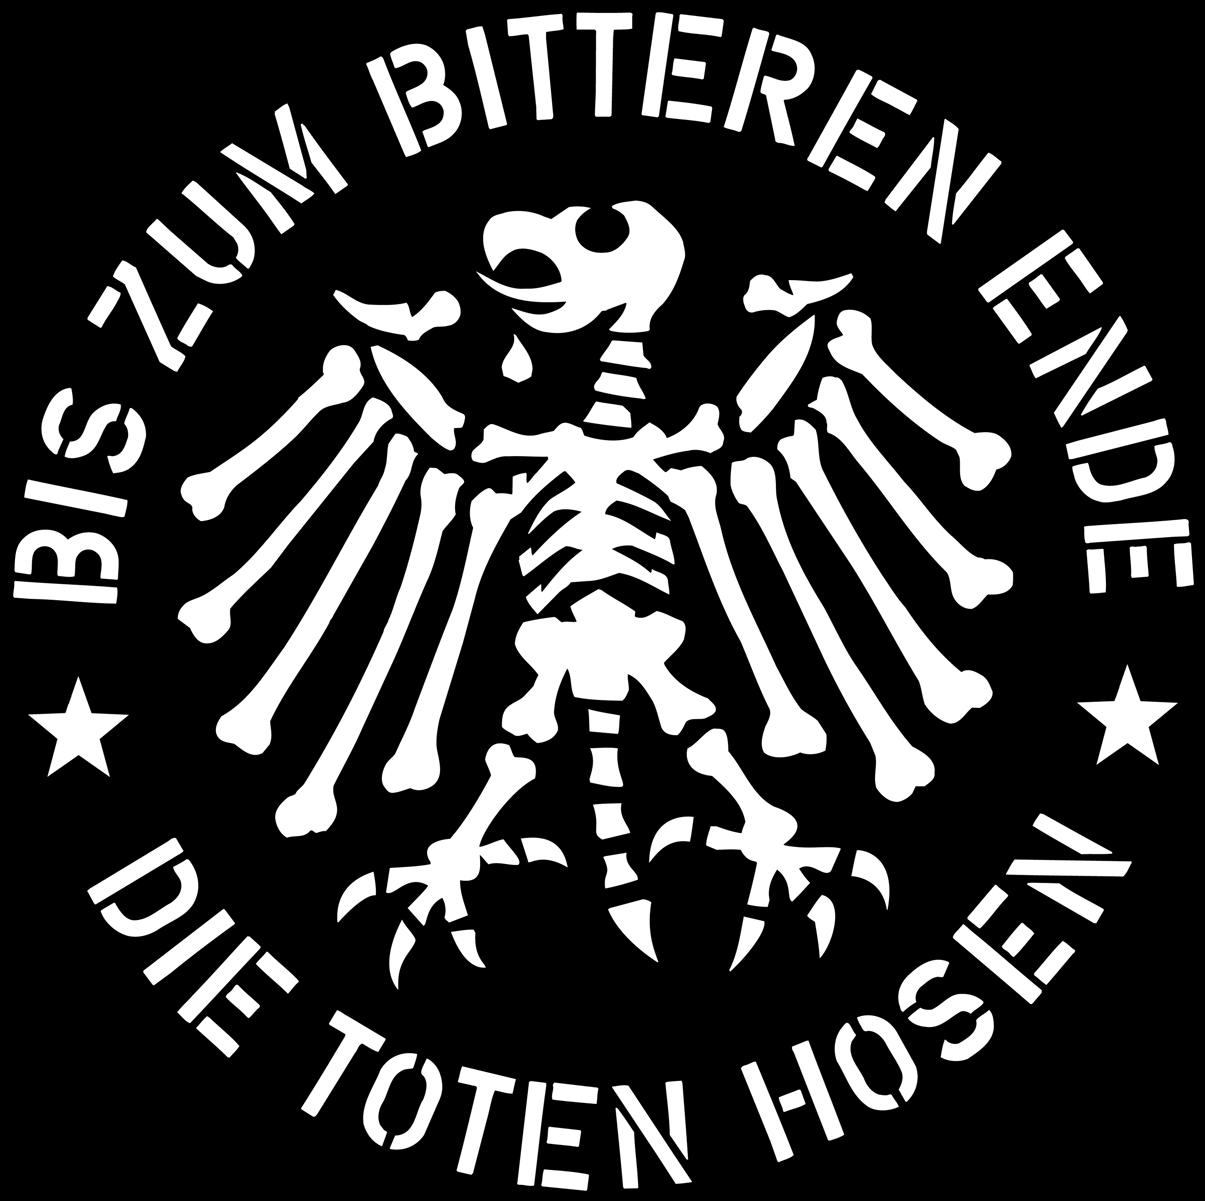 die toten hosen - bis zum bitteren ende - Lowbird.com - Der lowe Bird fngt den Wurm!